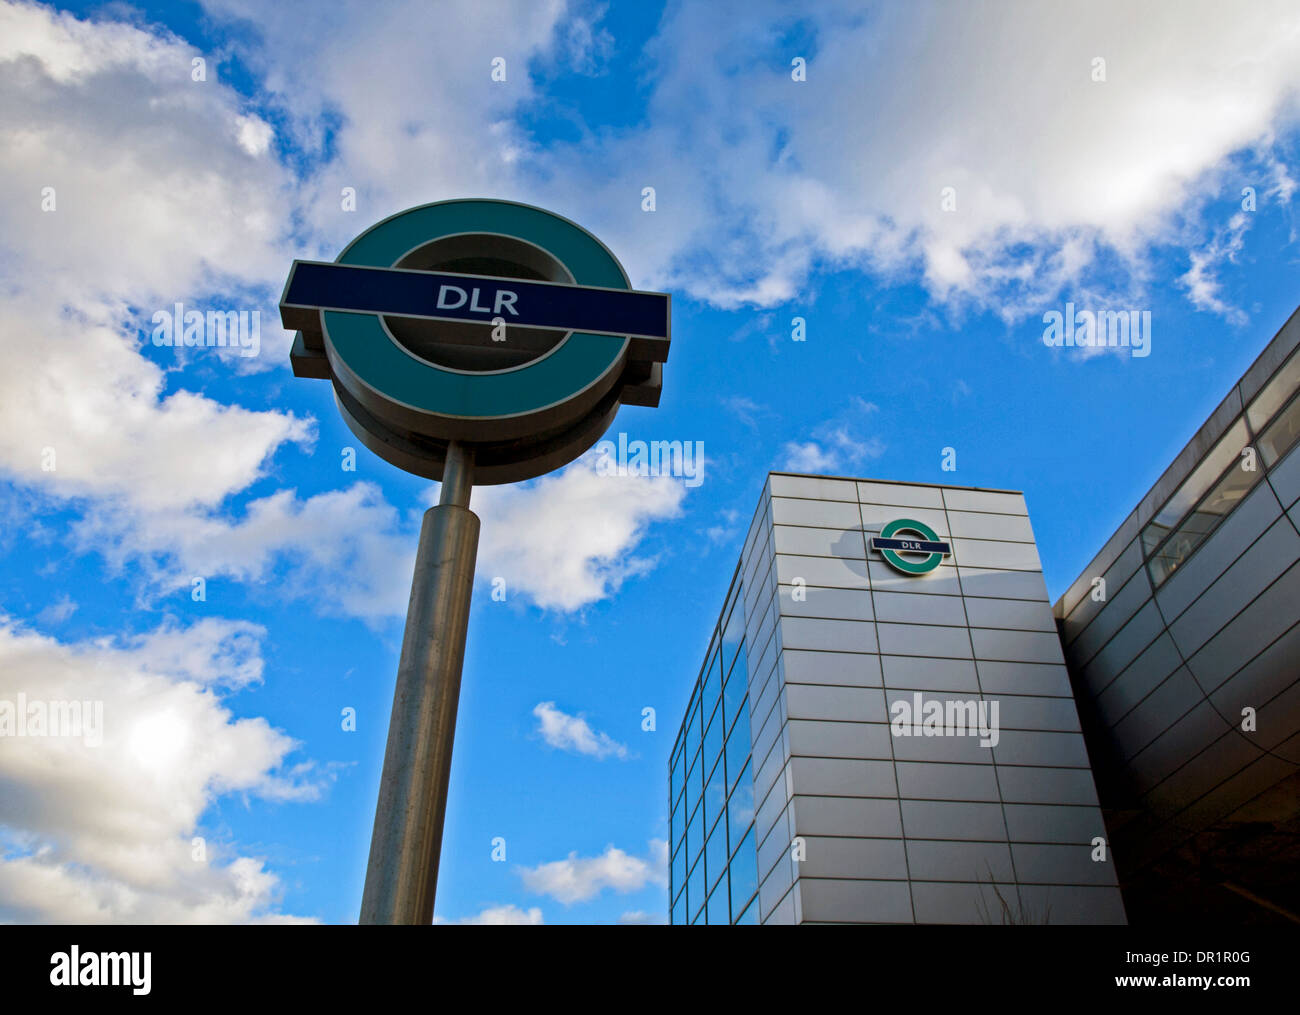 West Silvertown DLR Station, East London, London, England, United Kingdom - Stock Image